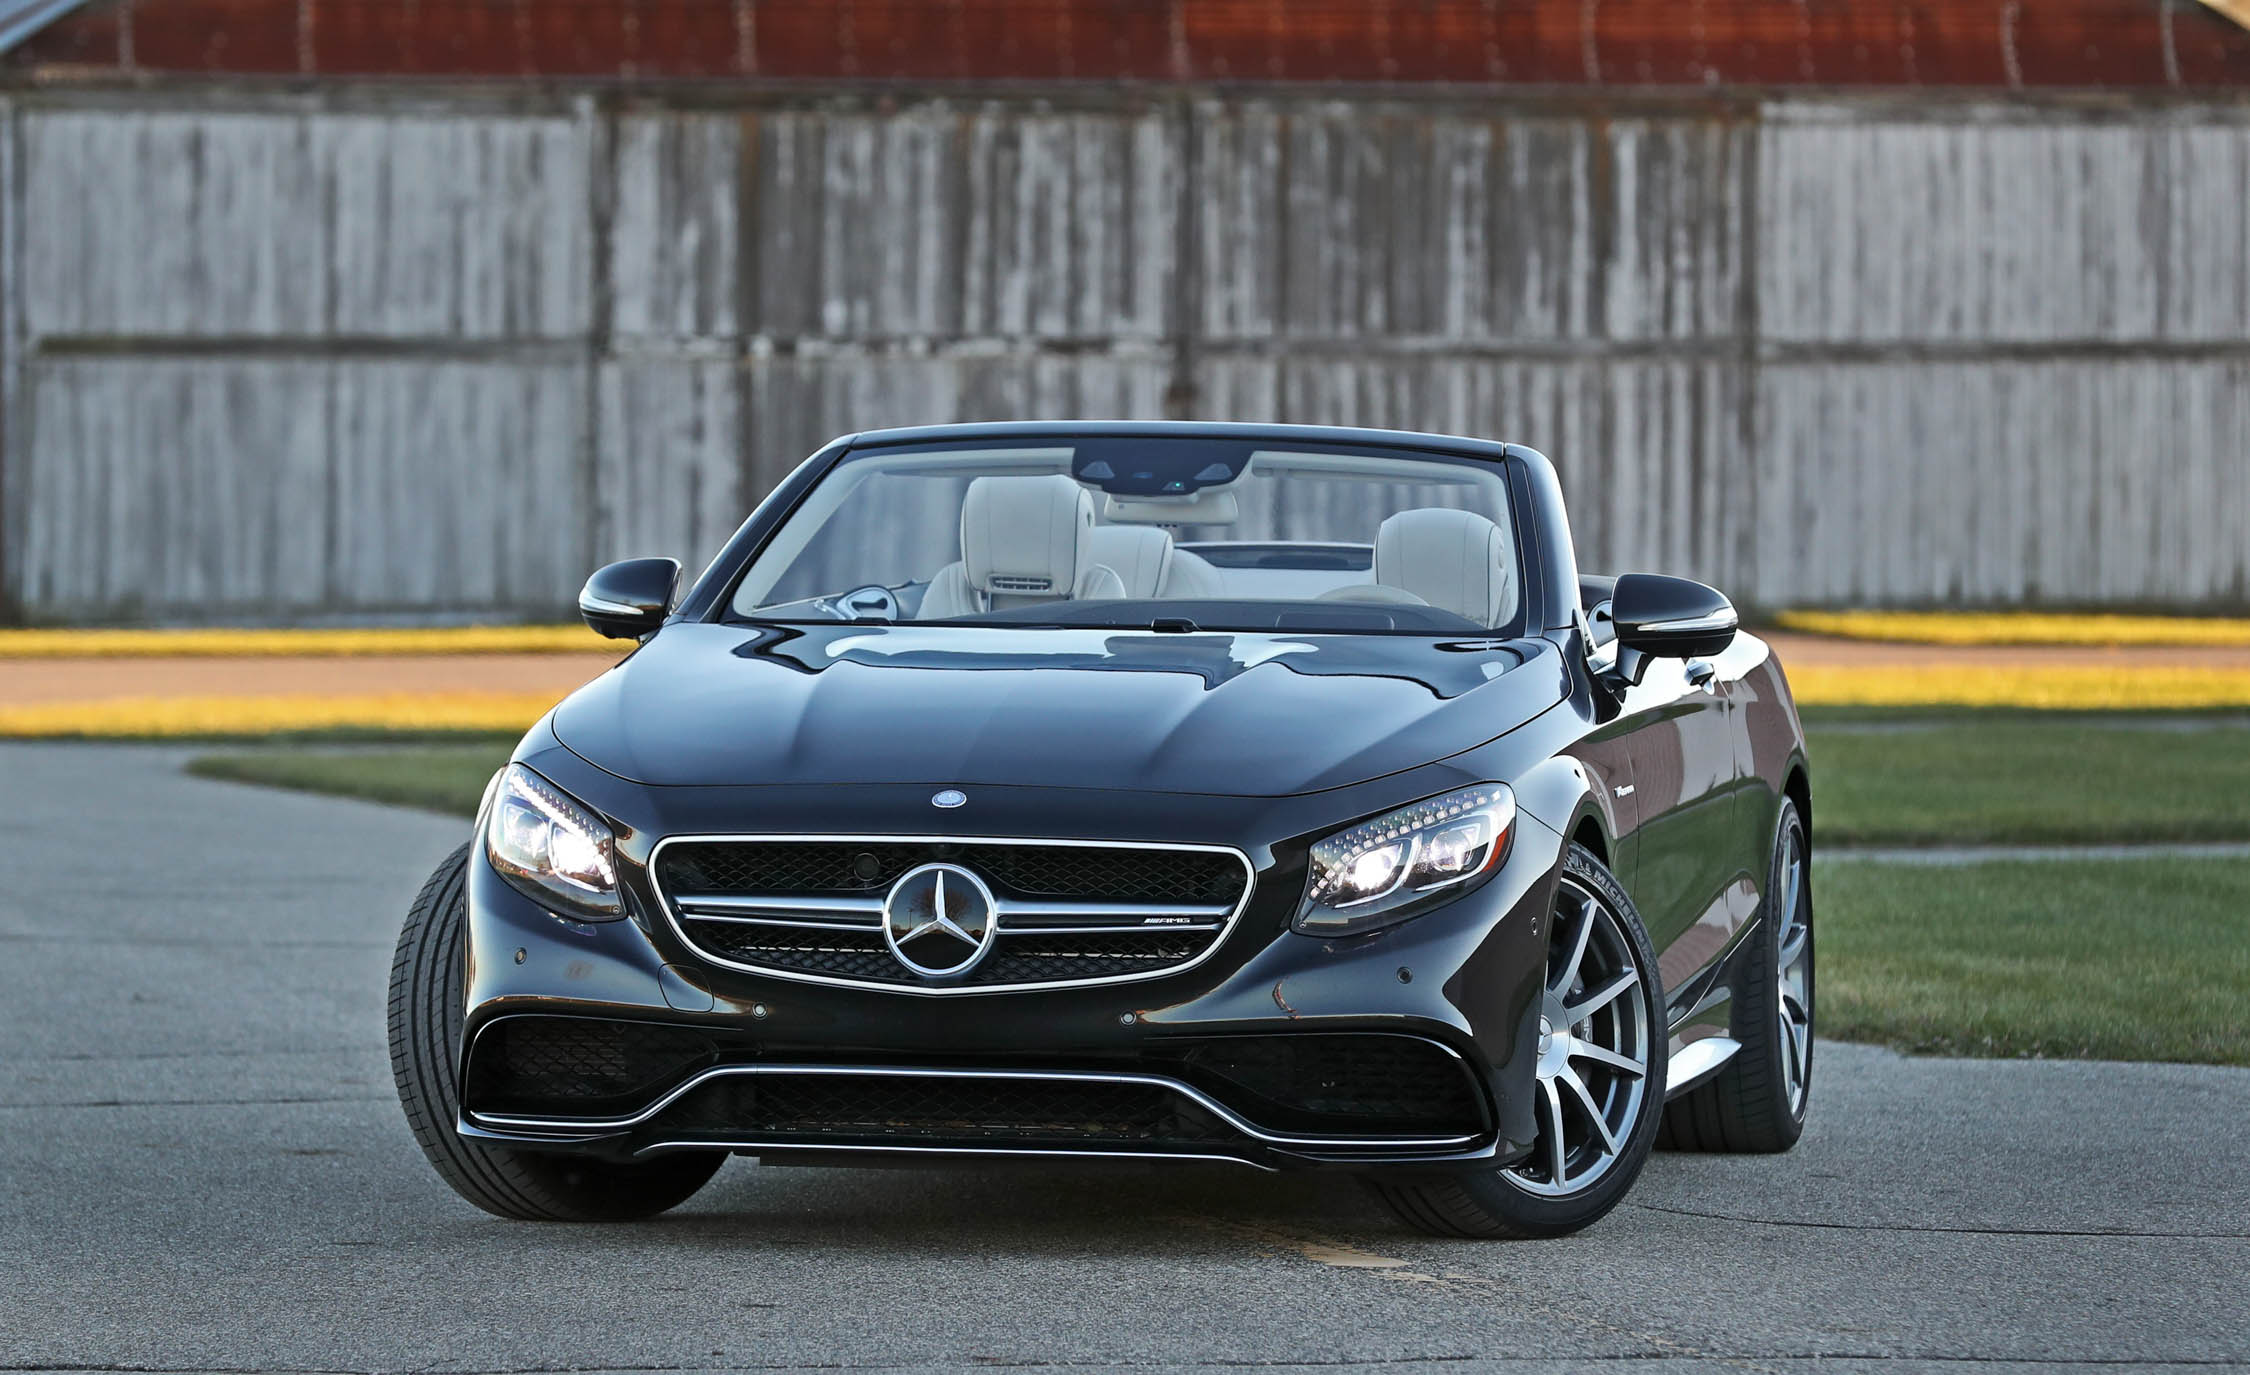 2017 Mercedes Amg S63 Cabriolet Exterior Front (Photo 3 of 38)